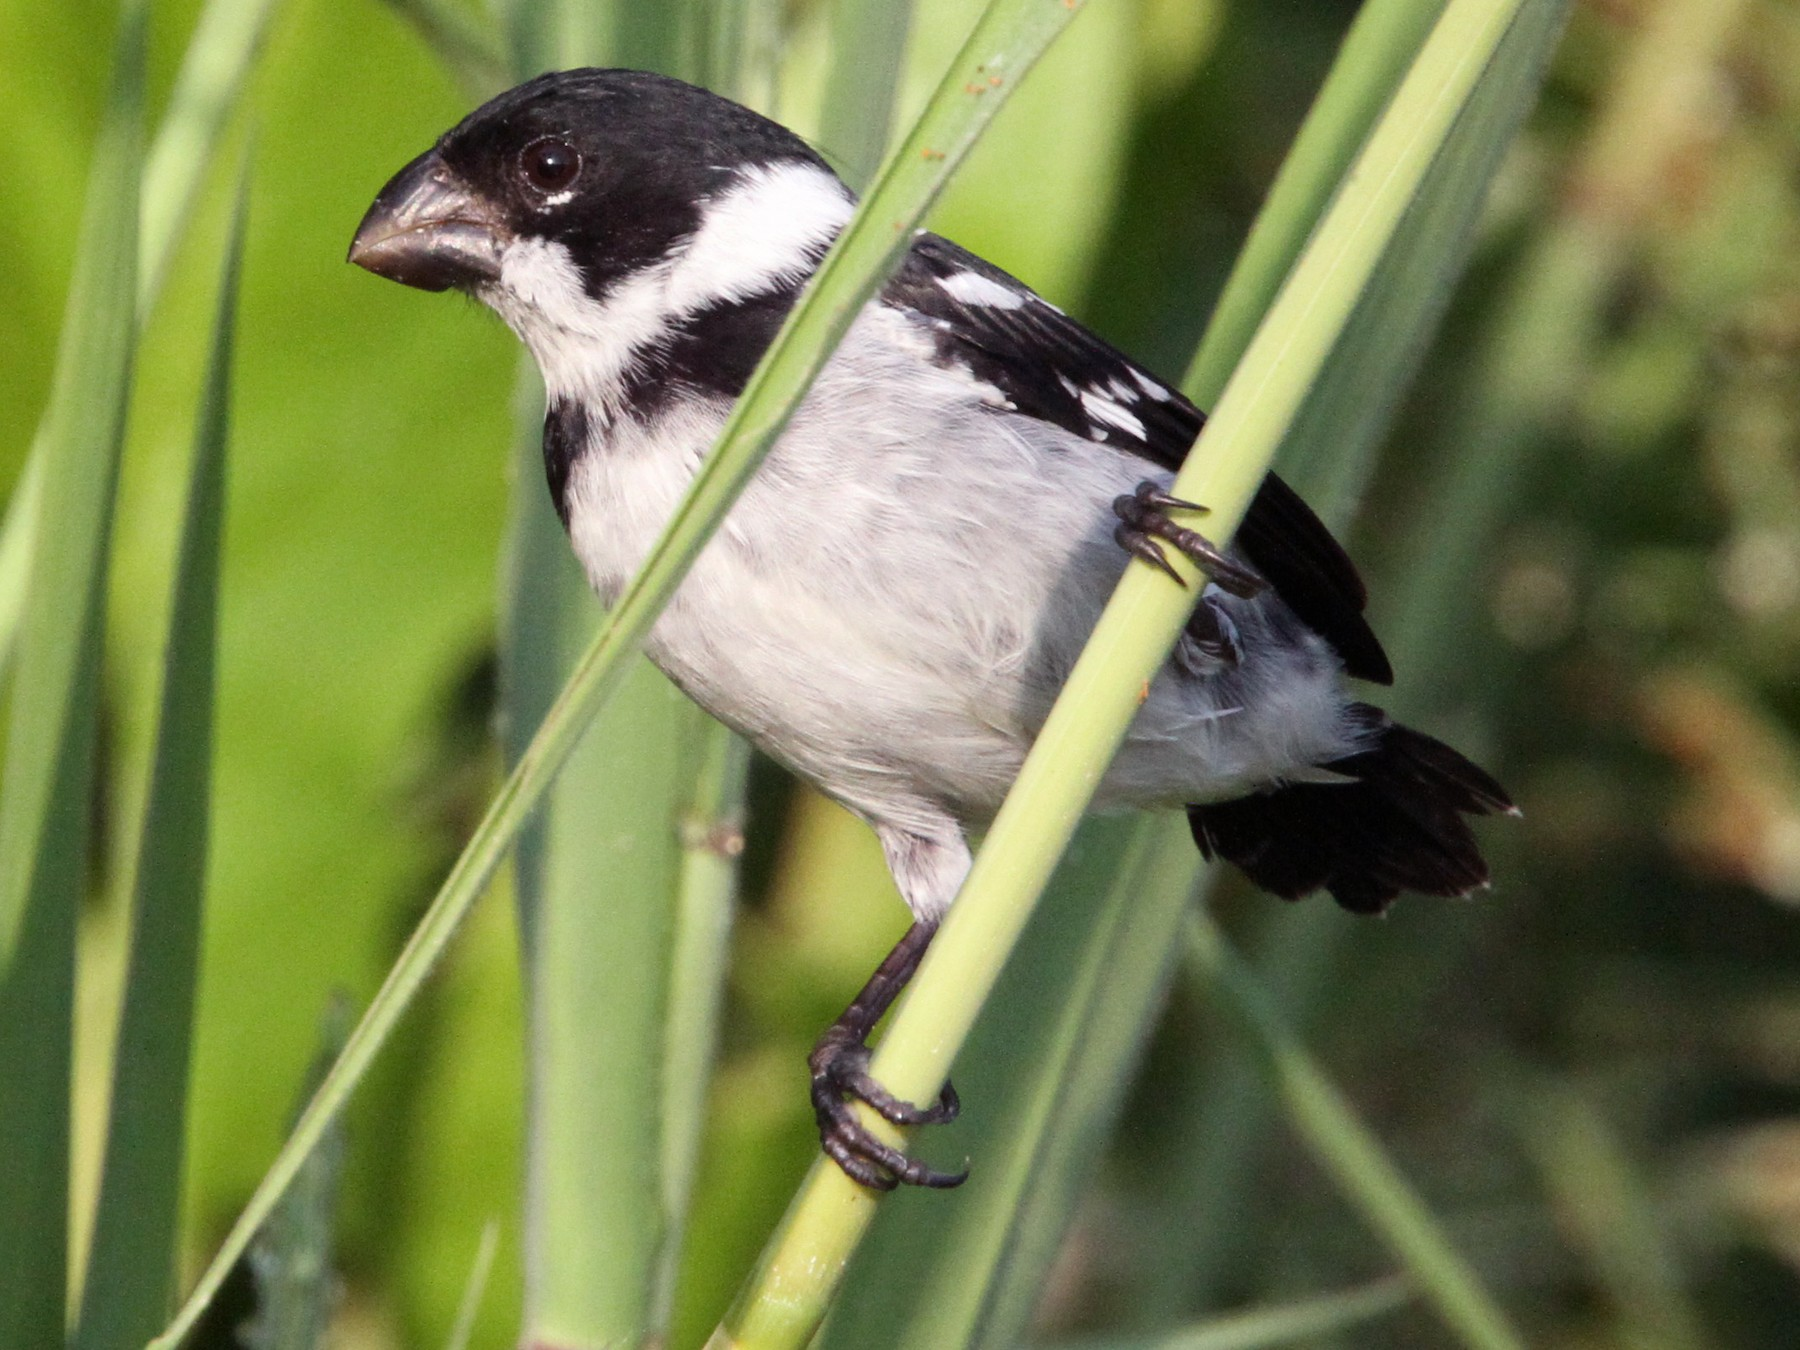 Wing-barred Seedeater - Thompson Ian